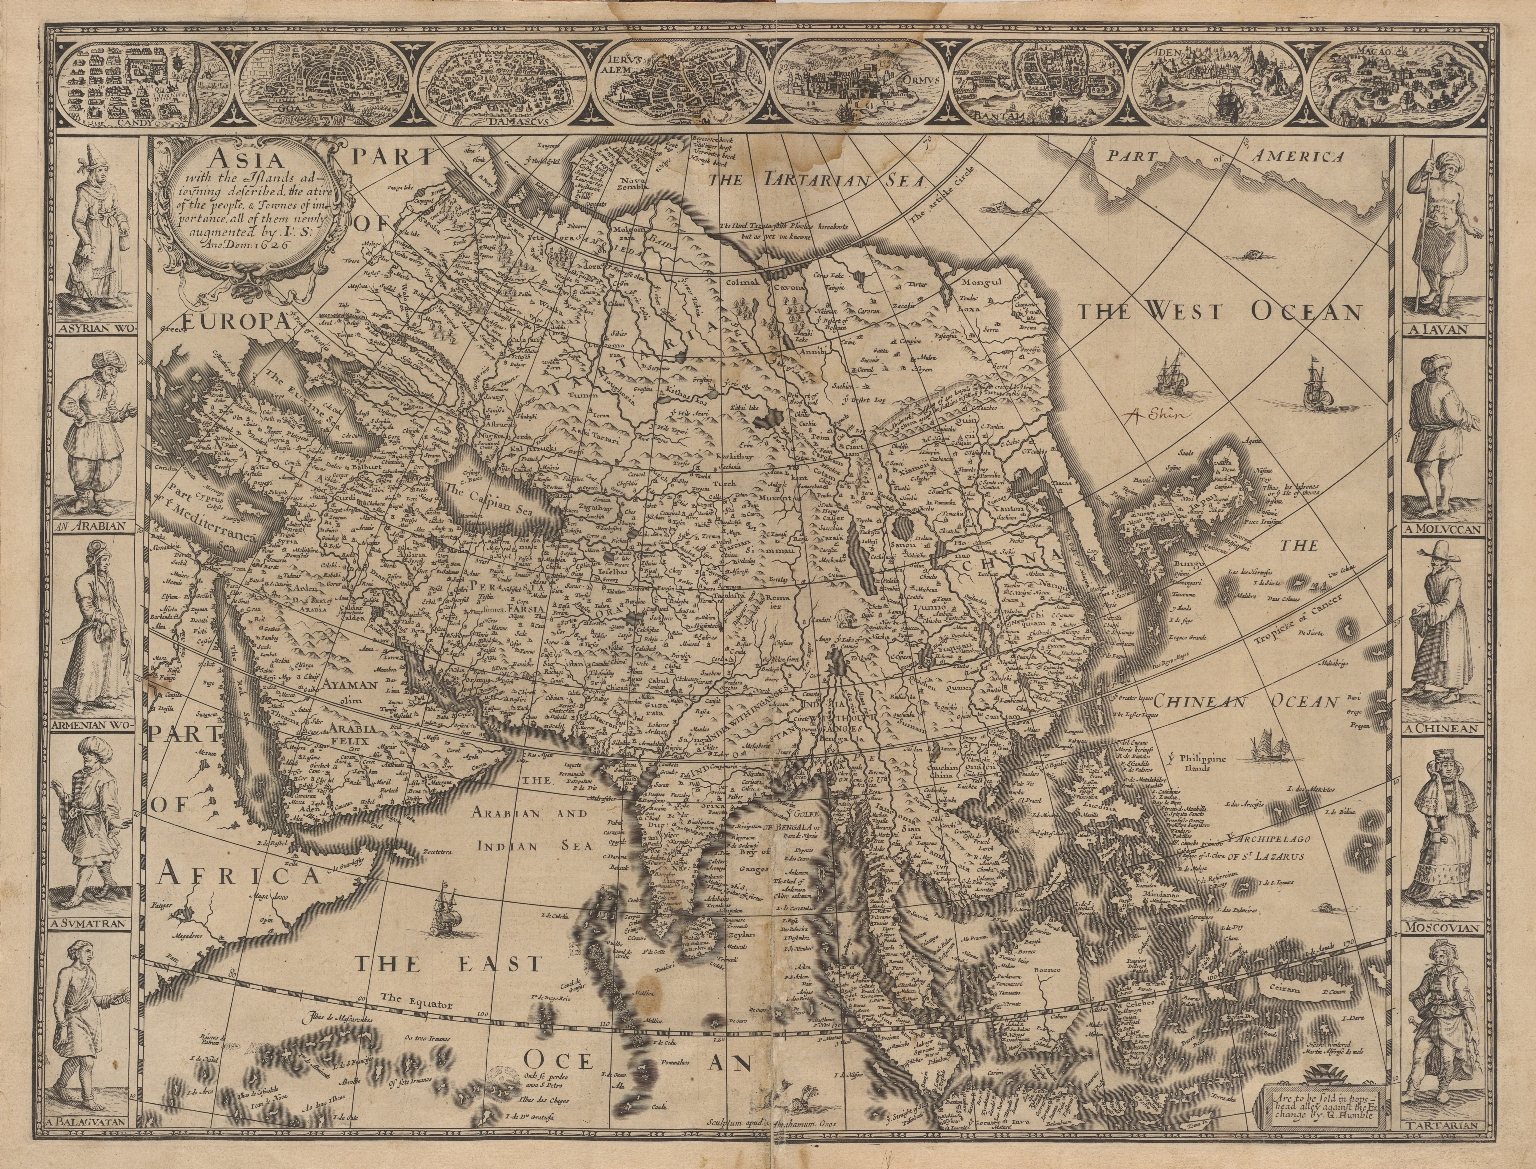 Asia with the Islands adjoining described, the attire of the people, & Townes of importance